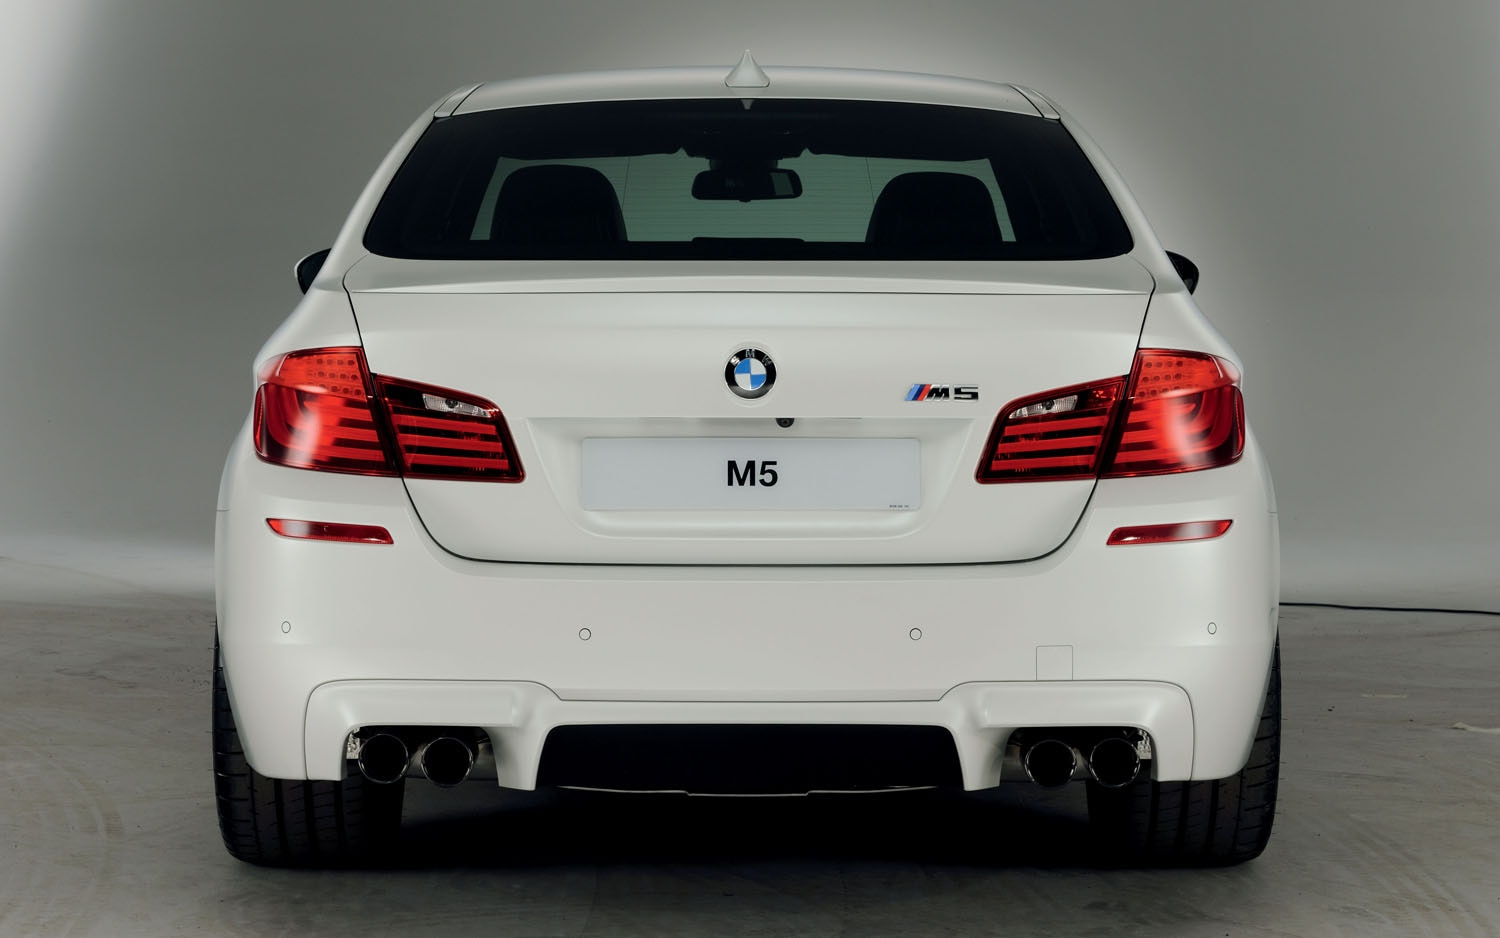 Bmw Possibly Planning M7 Adds M3 And M5 Performance Editions